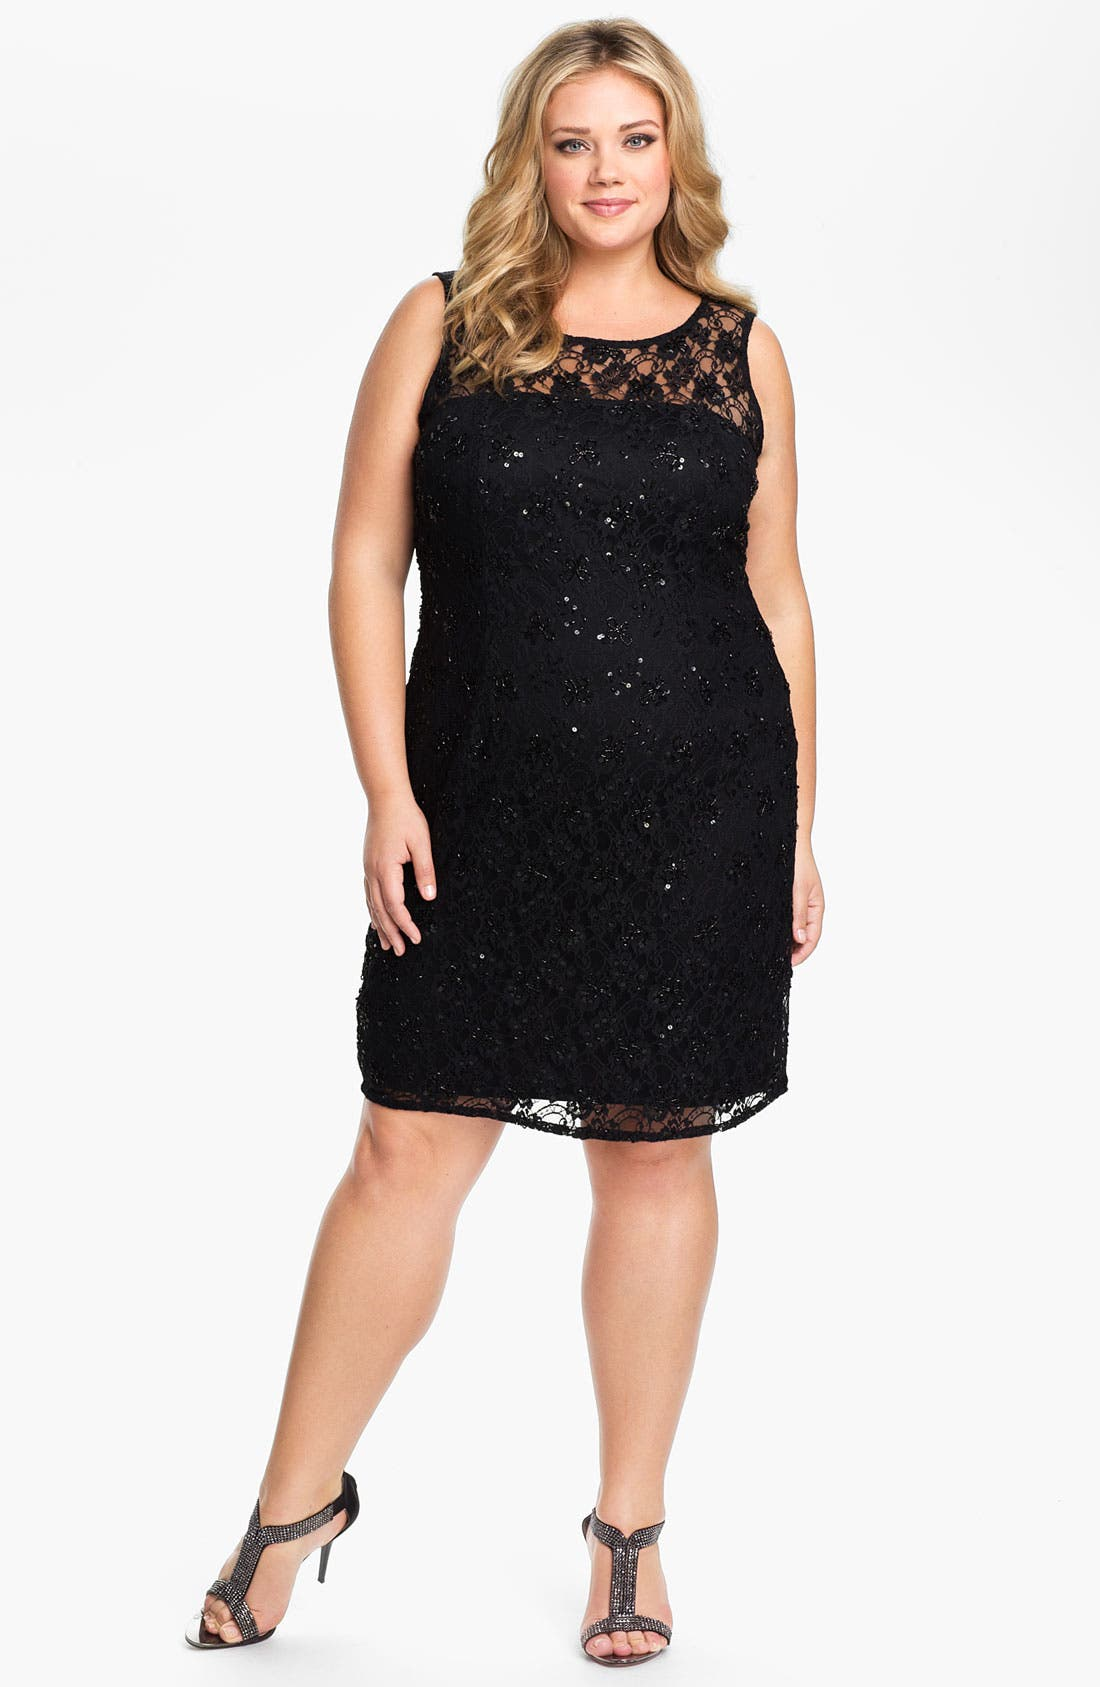 Alternate Image 1 Selected - Adrianna Papell Lace Overlay Sheath Dress (Plus)